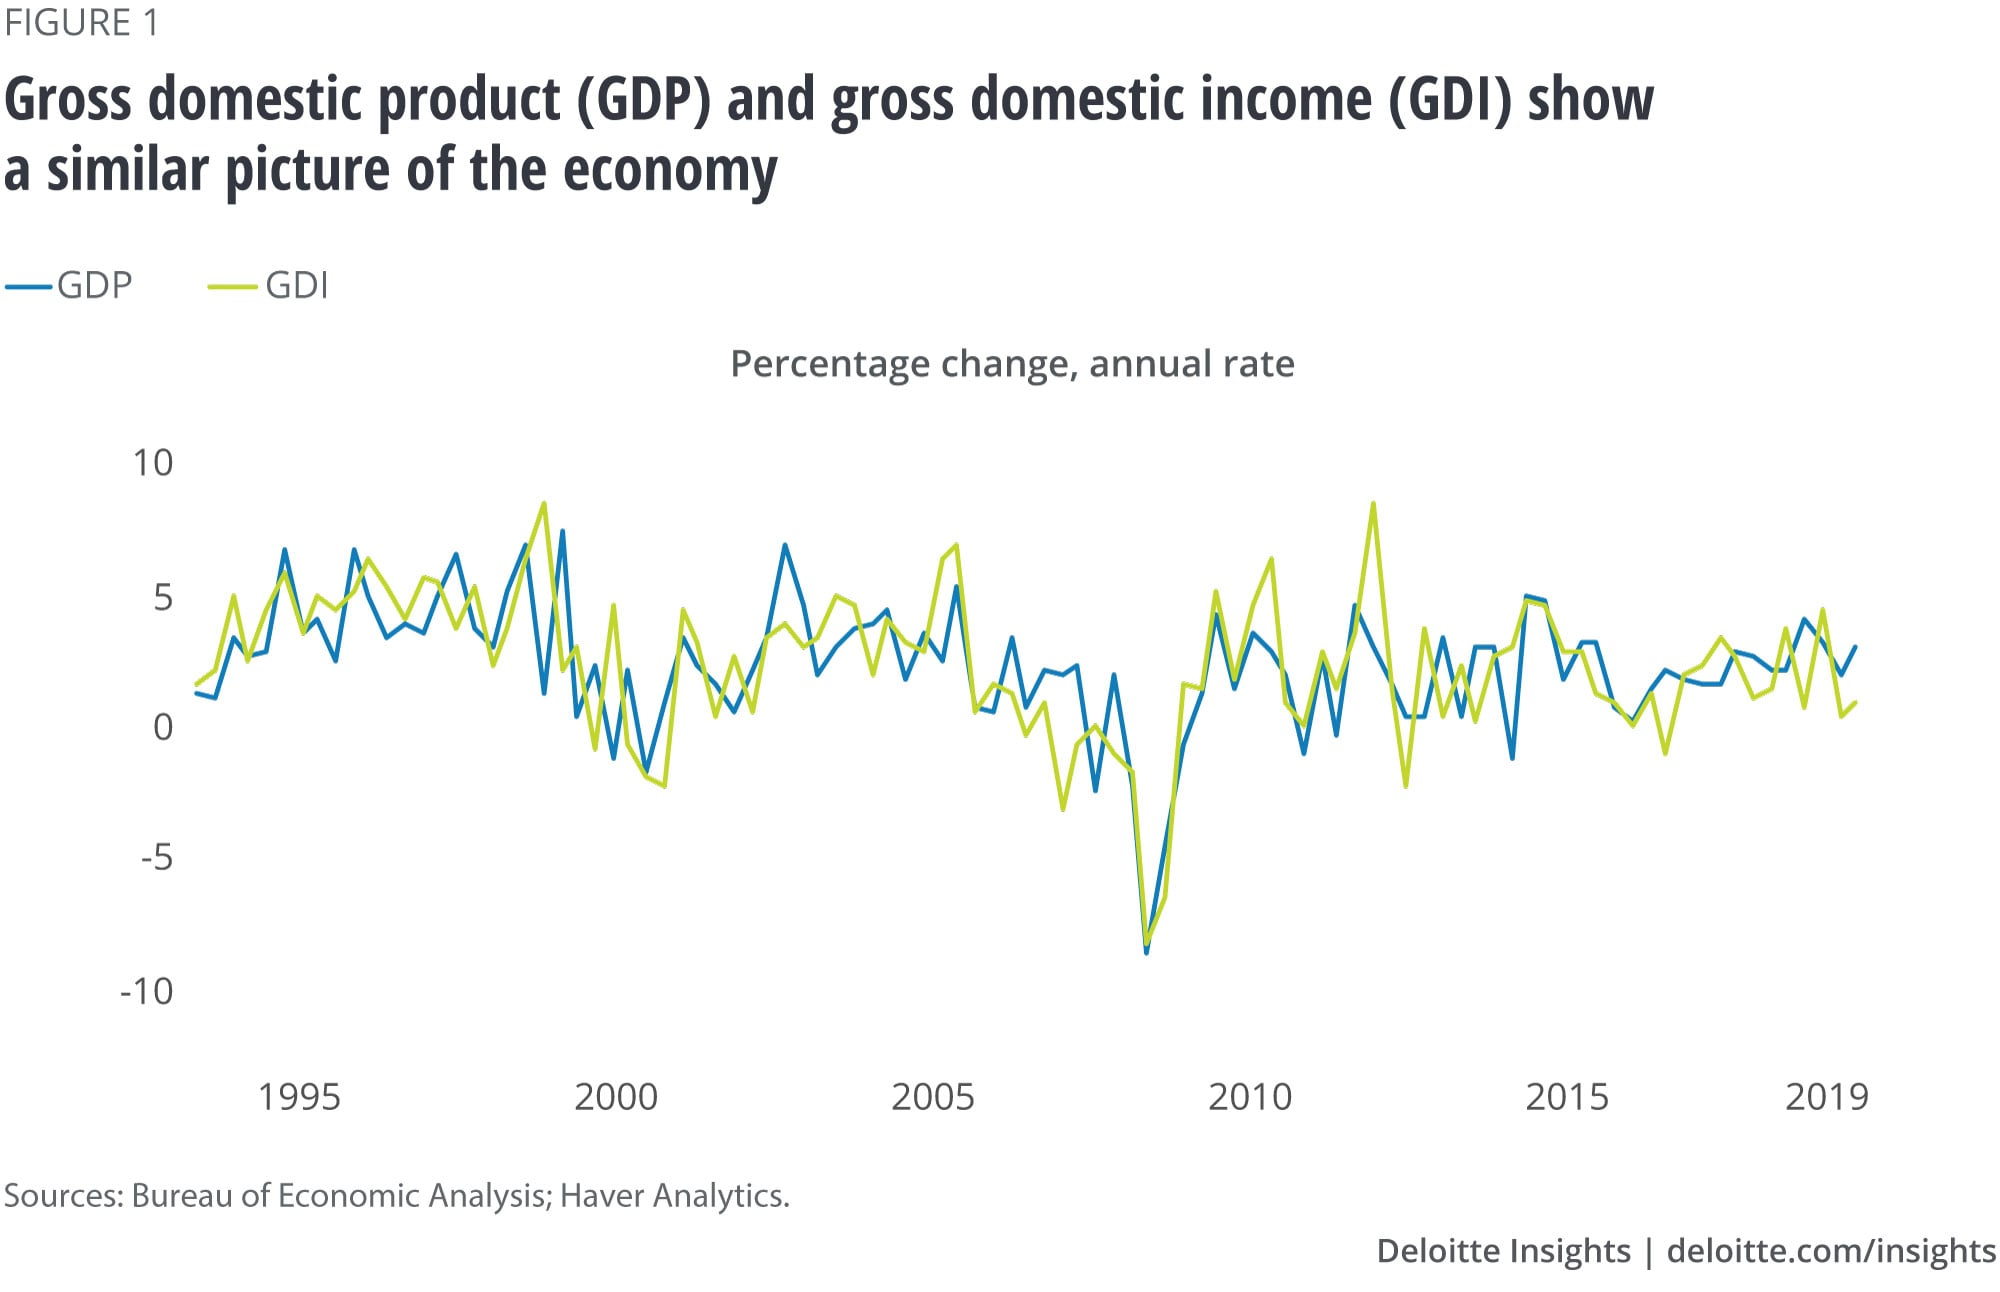 Gross domestic product (GDP) and gross domestic income (GDI) show a similar picture of the economy